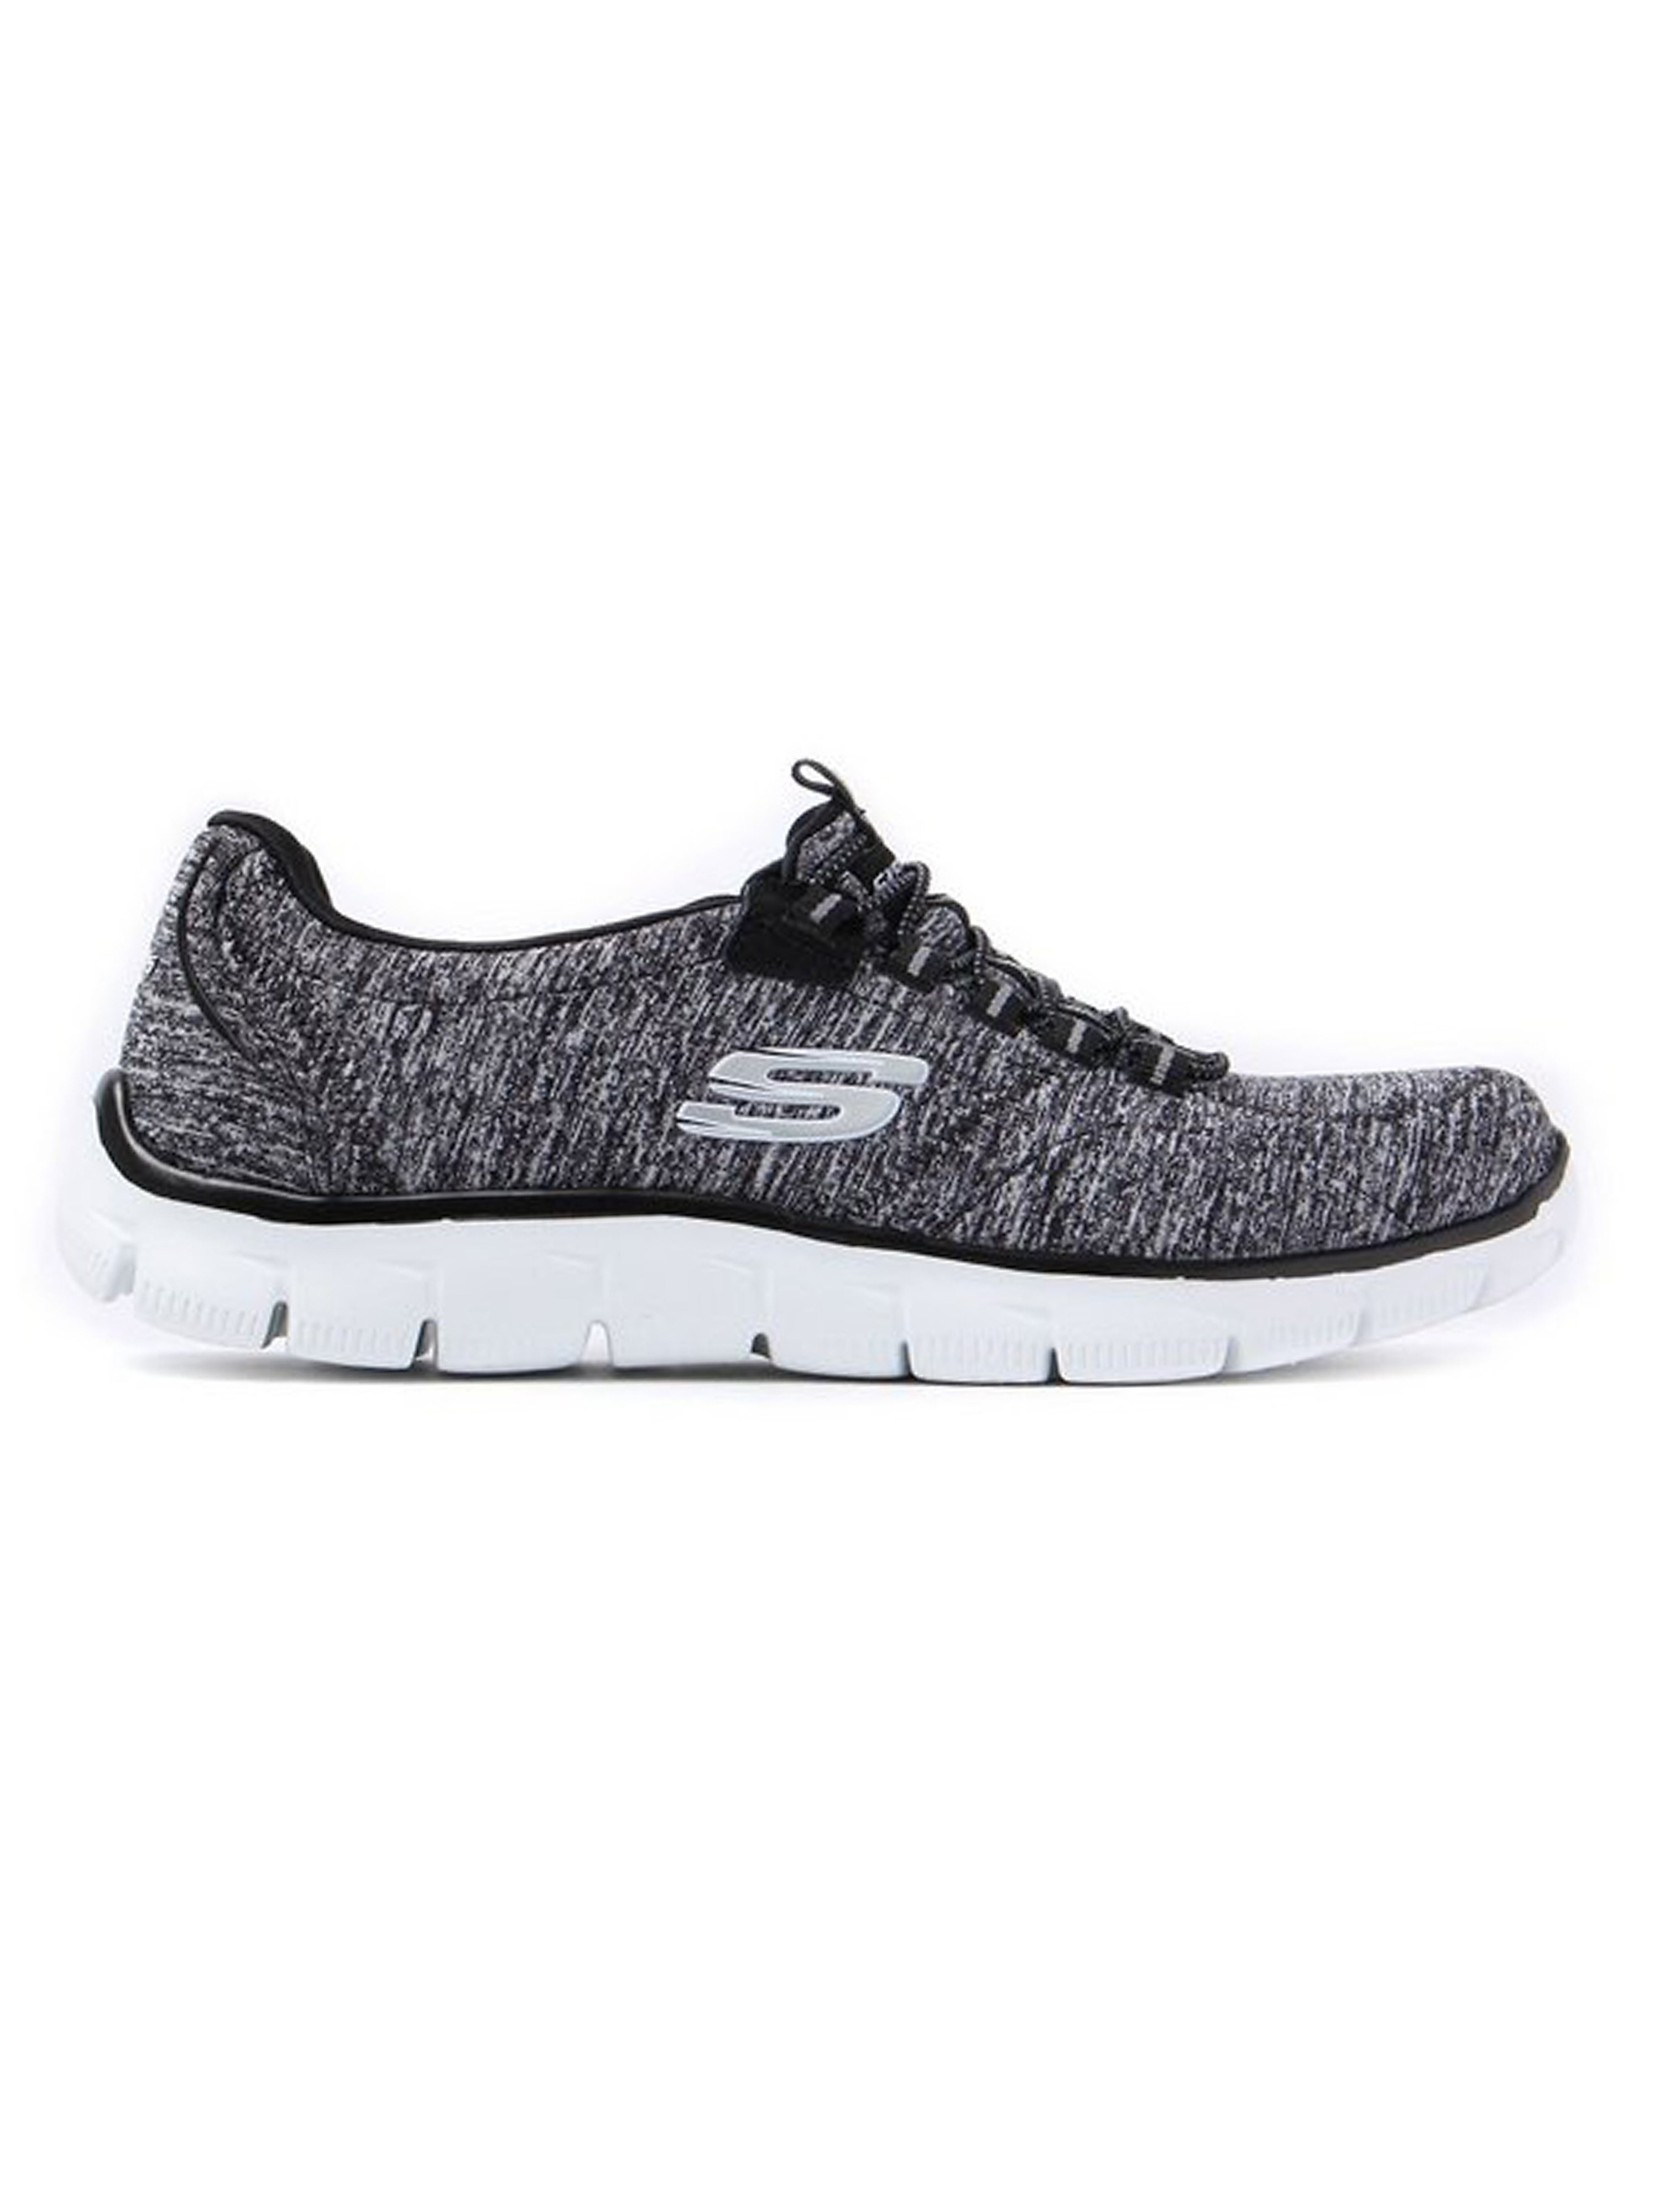 Skechers Women's Empire Heart to Heart Slip-On Trainers - Black & White